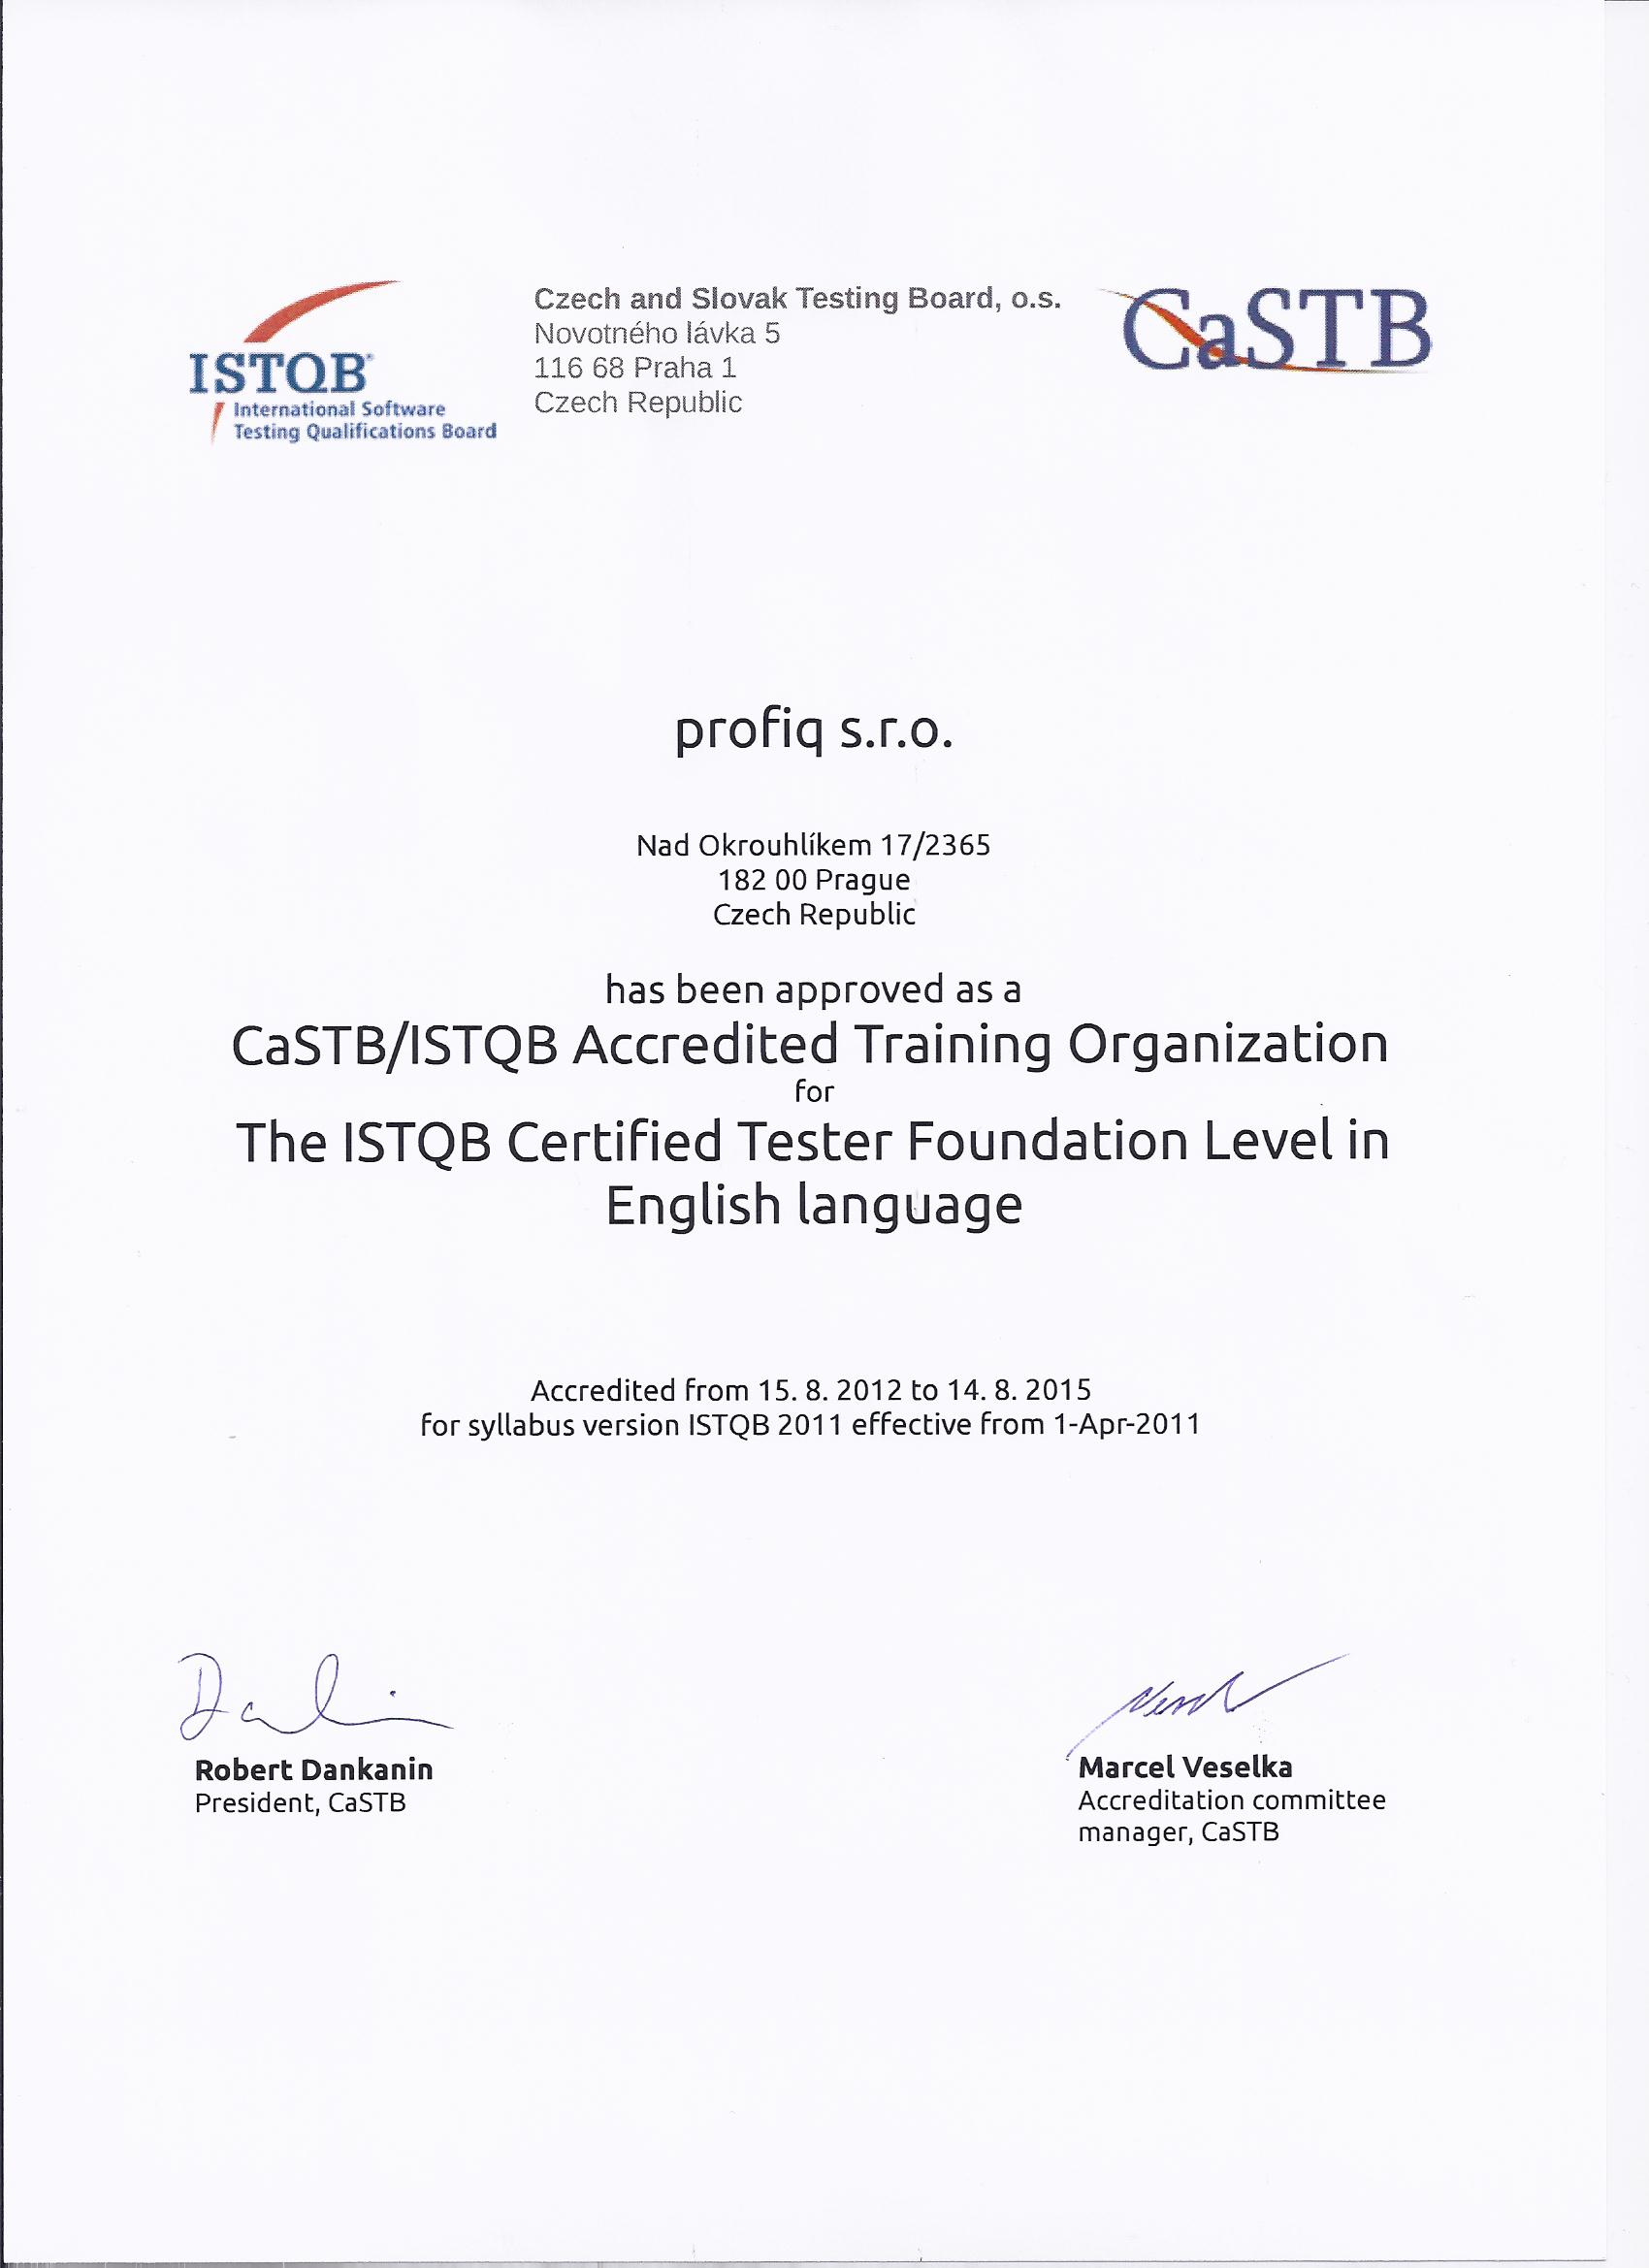 Profiq becomes an istqb accredited training provider profiq with the granted accreditation we are ready to provide training that leads to the istqb certified tester foundation level certificate a professional 1betcityfo Image collections